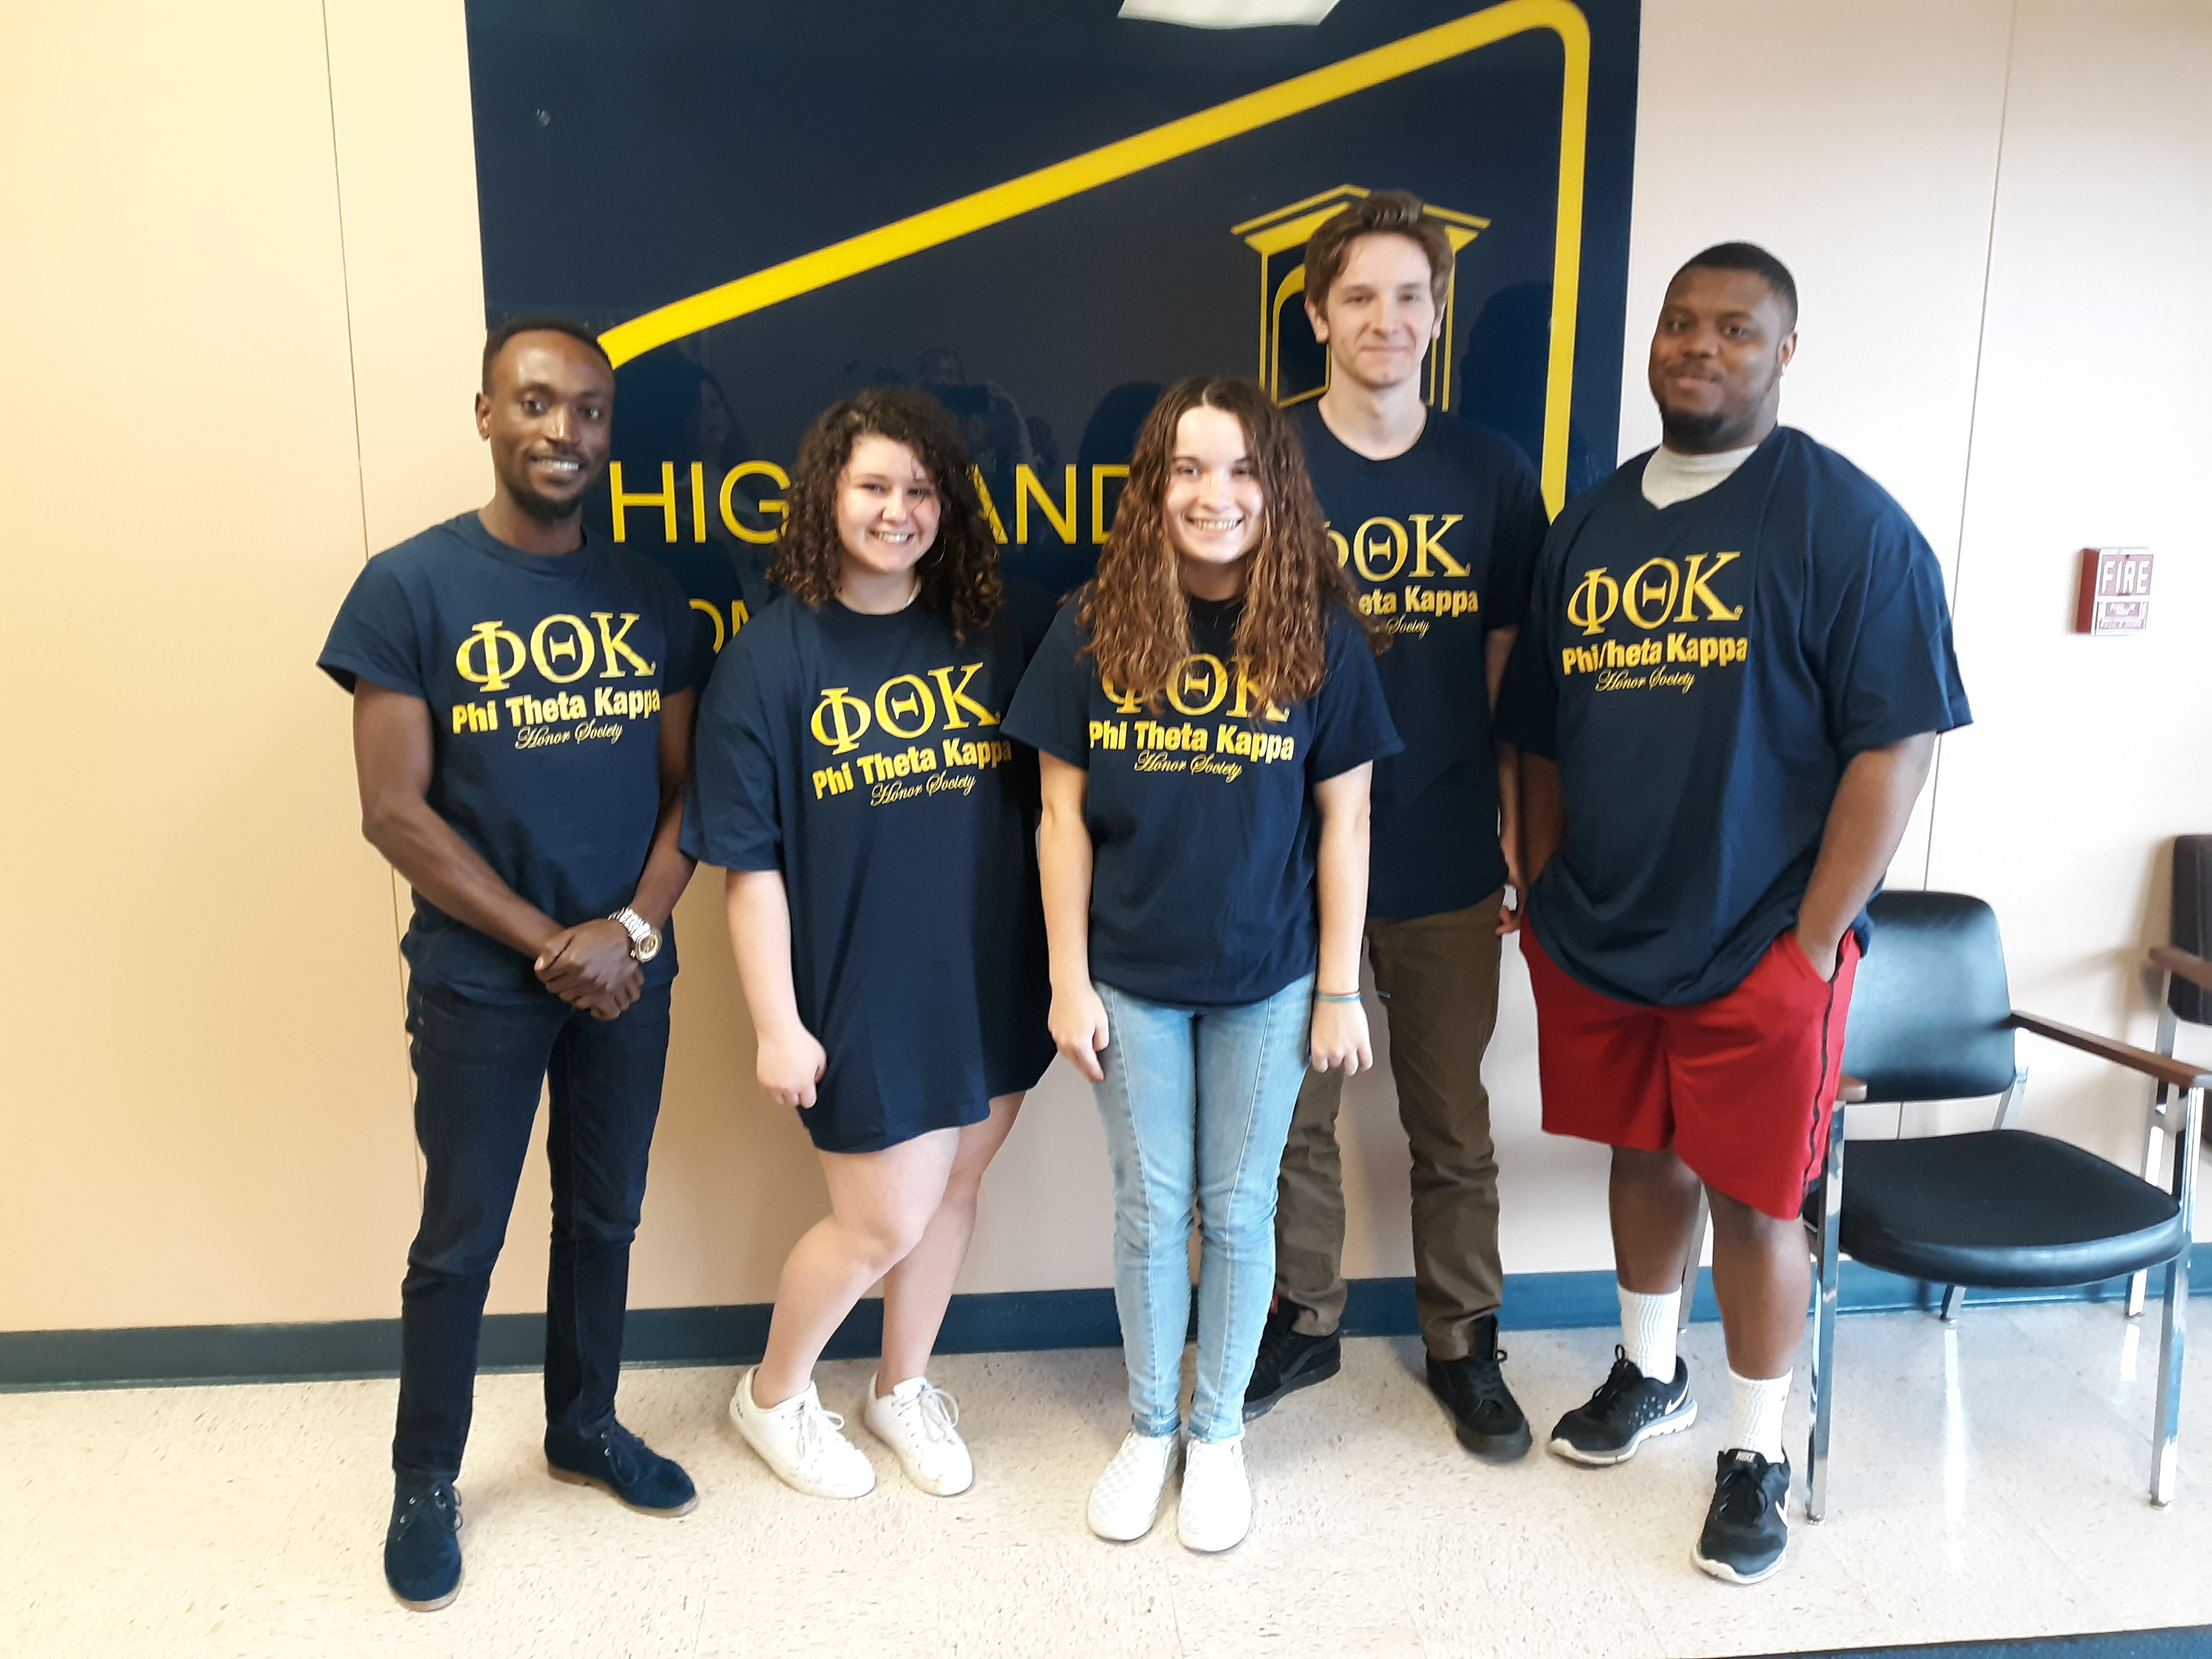 Highland Community College's Wamego PTK Earns Five Star Status